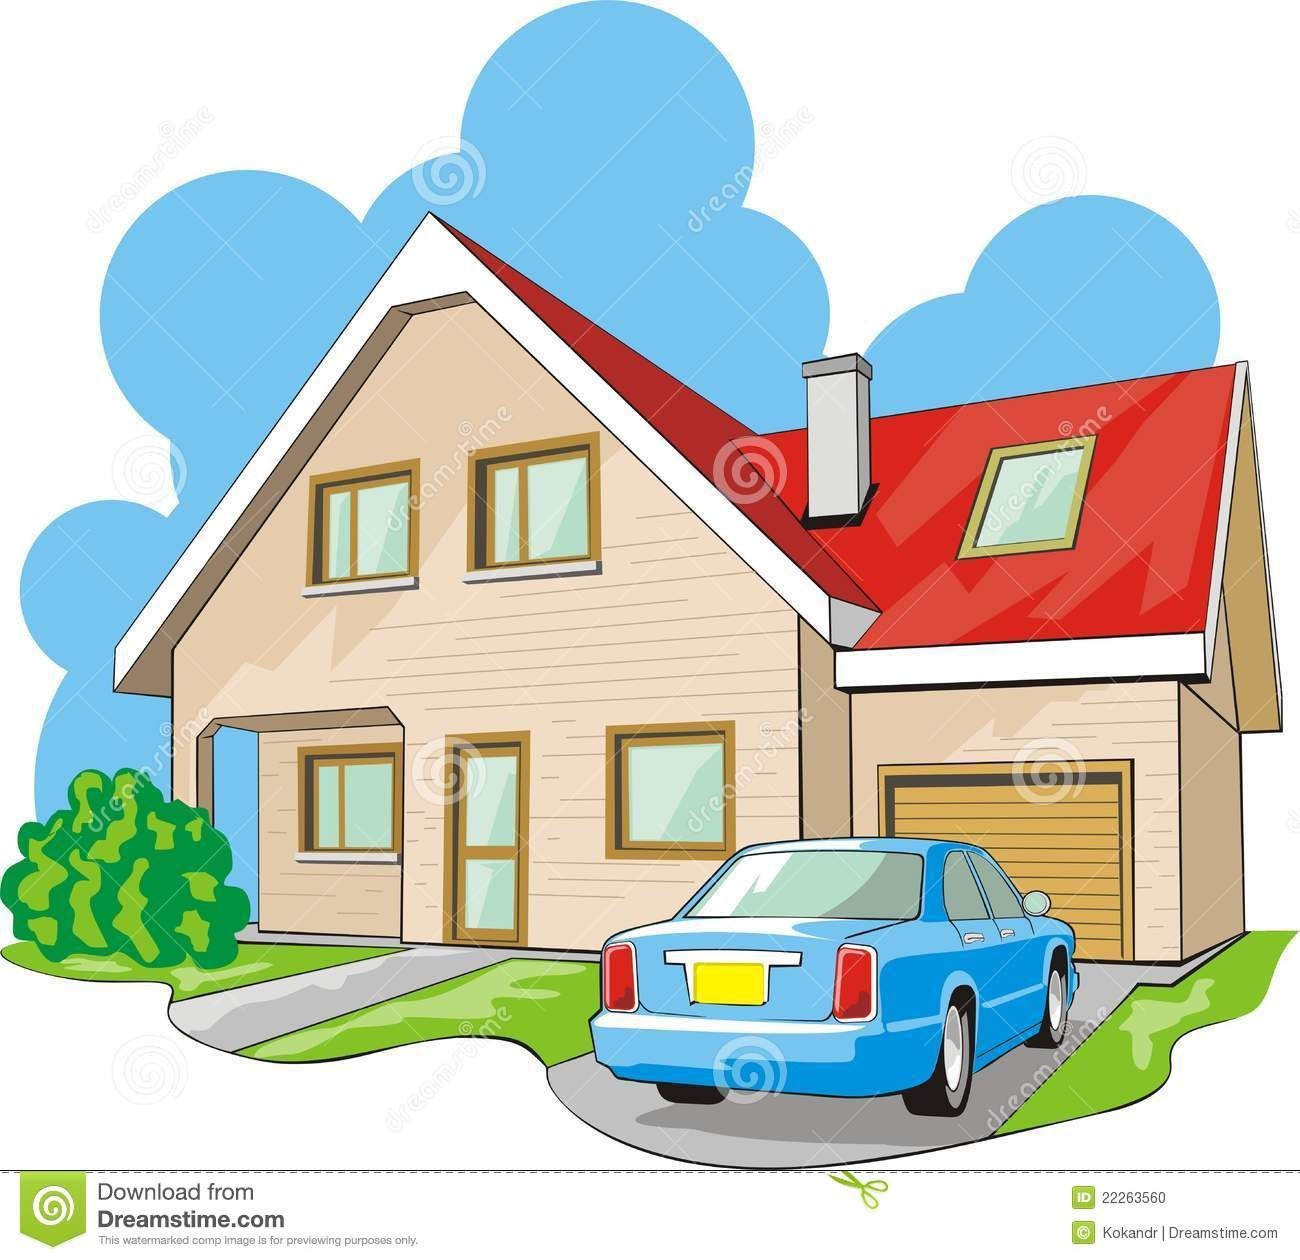 Clipart house garage. With pictures clip art